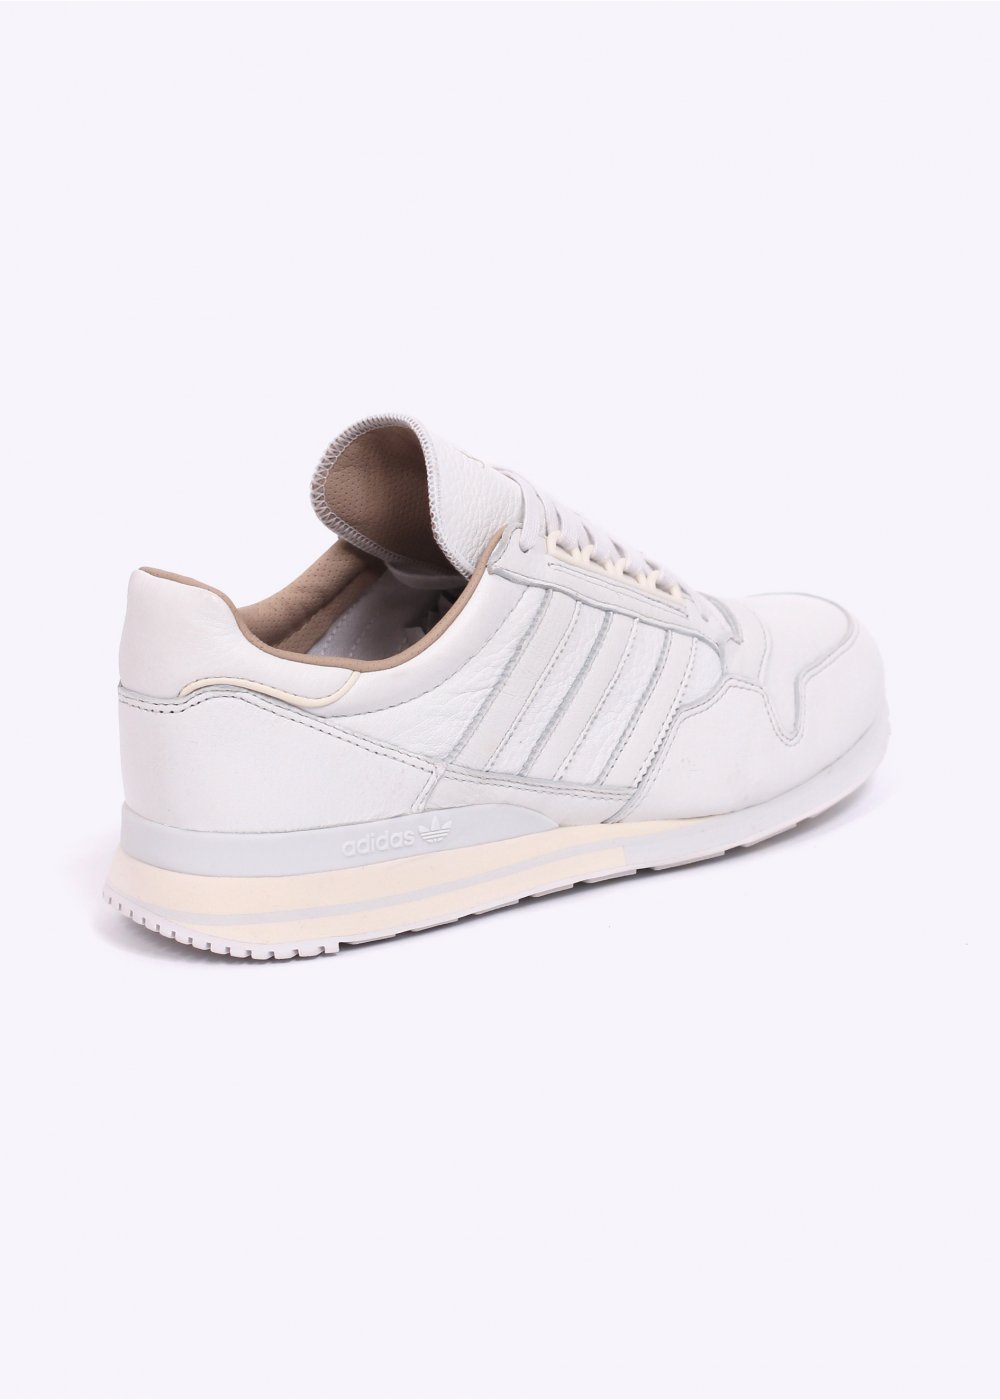 adidas originals zx 500 kids white